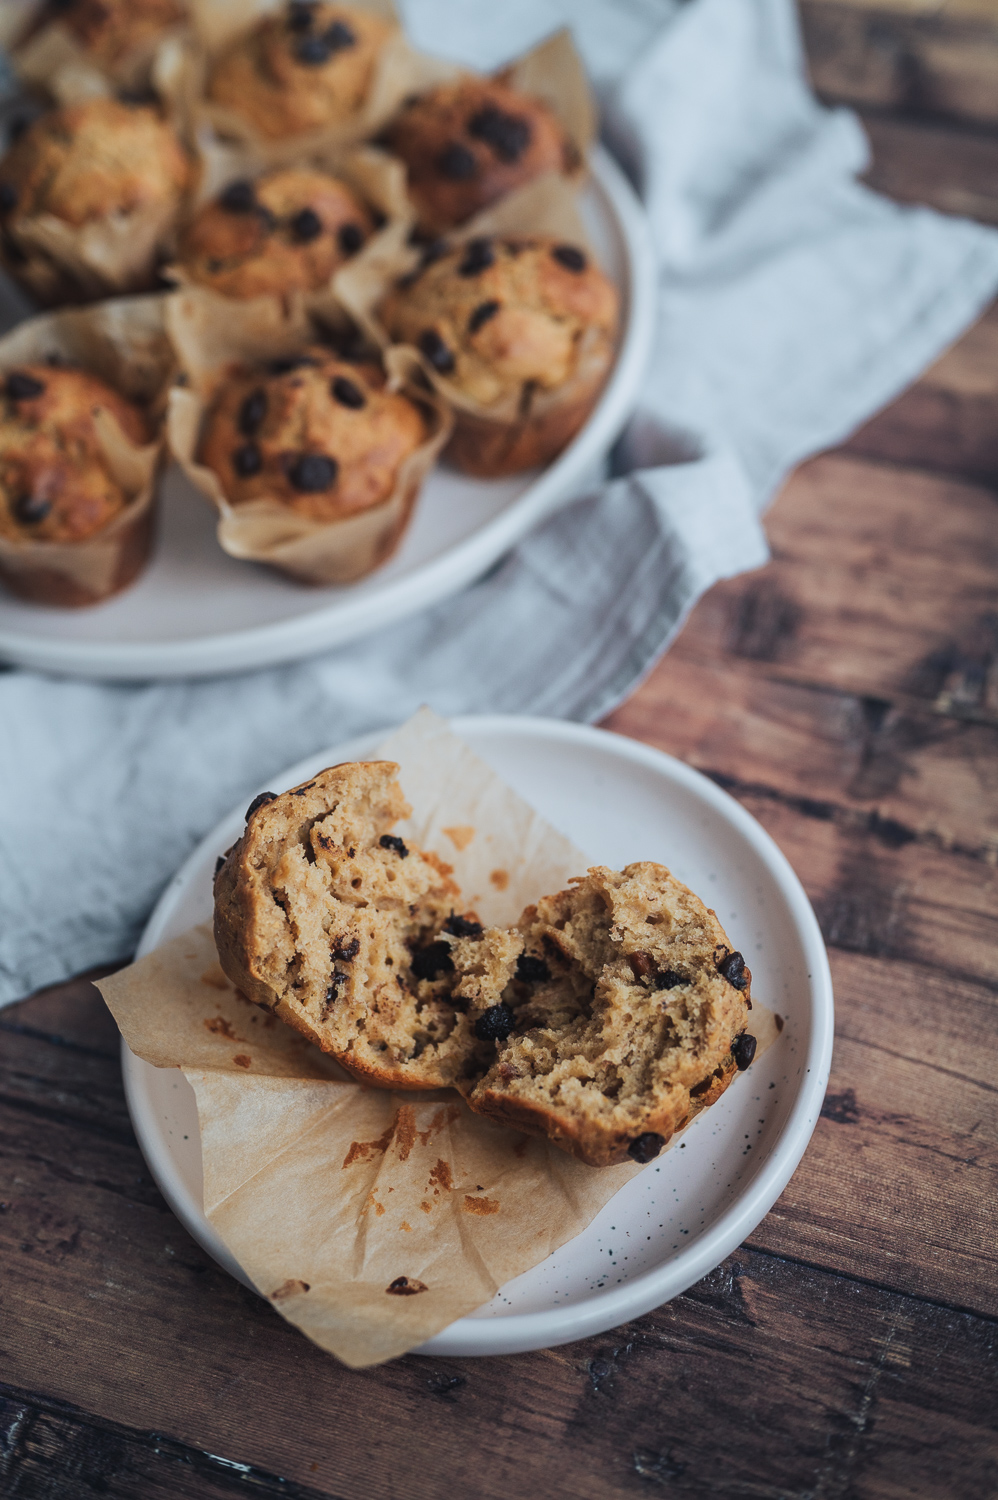 Peanut Butter, Banana, Oats and Chocolate Chip Muffins